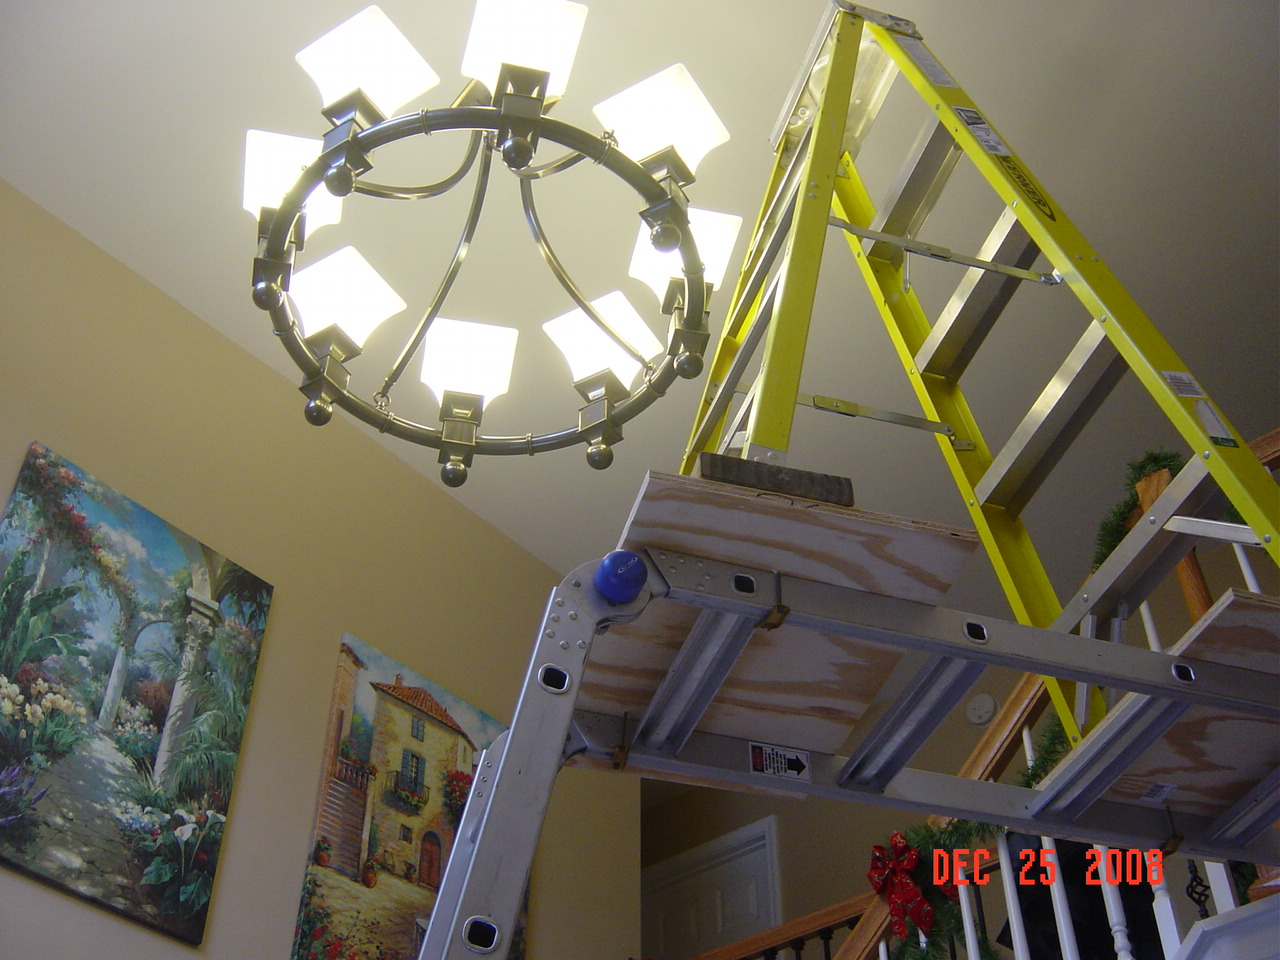 Replacing chandelier entry is 2 stories tall phone painting replacing chandelier entry is 2 stories tall dsc01823g arubaitofo Choice Image